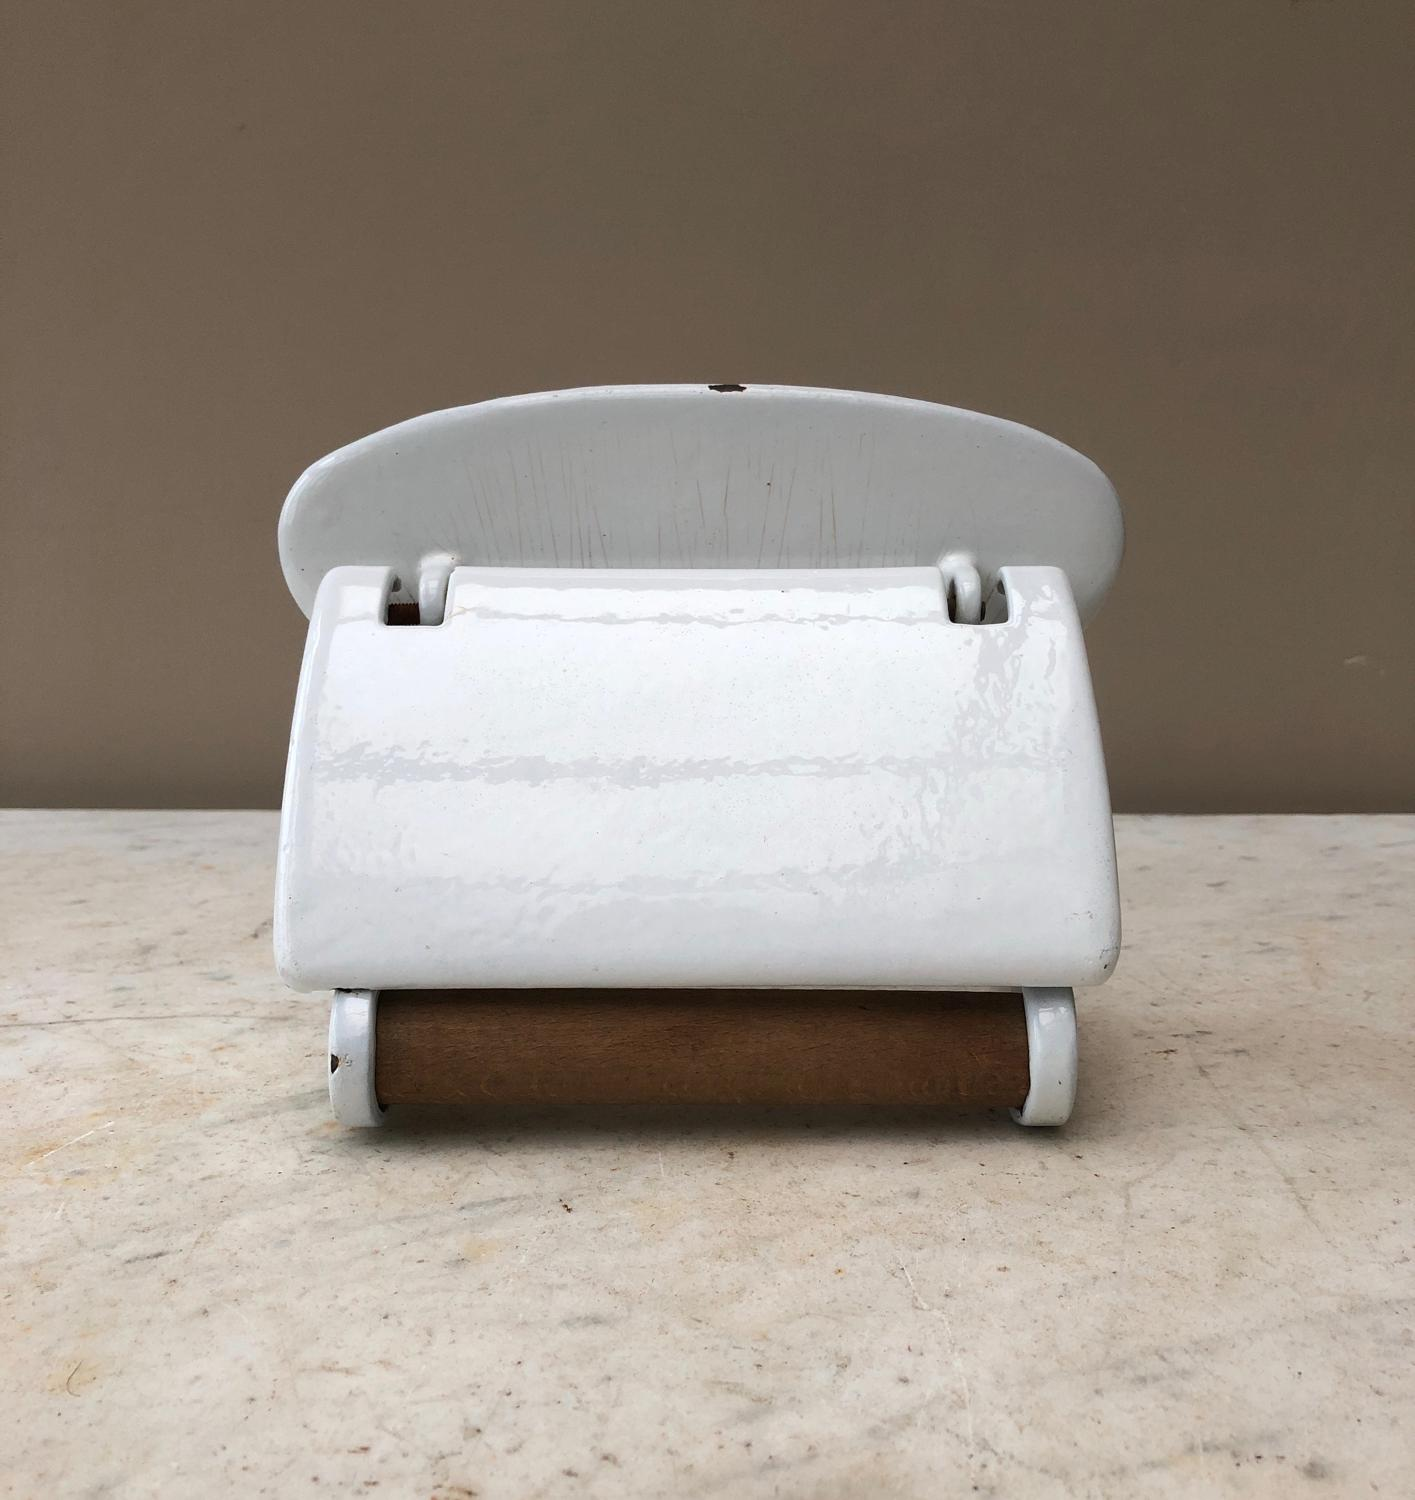 Early 20th Century White Enamel Loo Roll Holder with Flap to Stop Pape